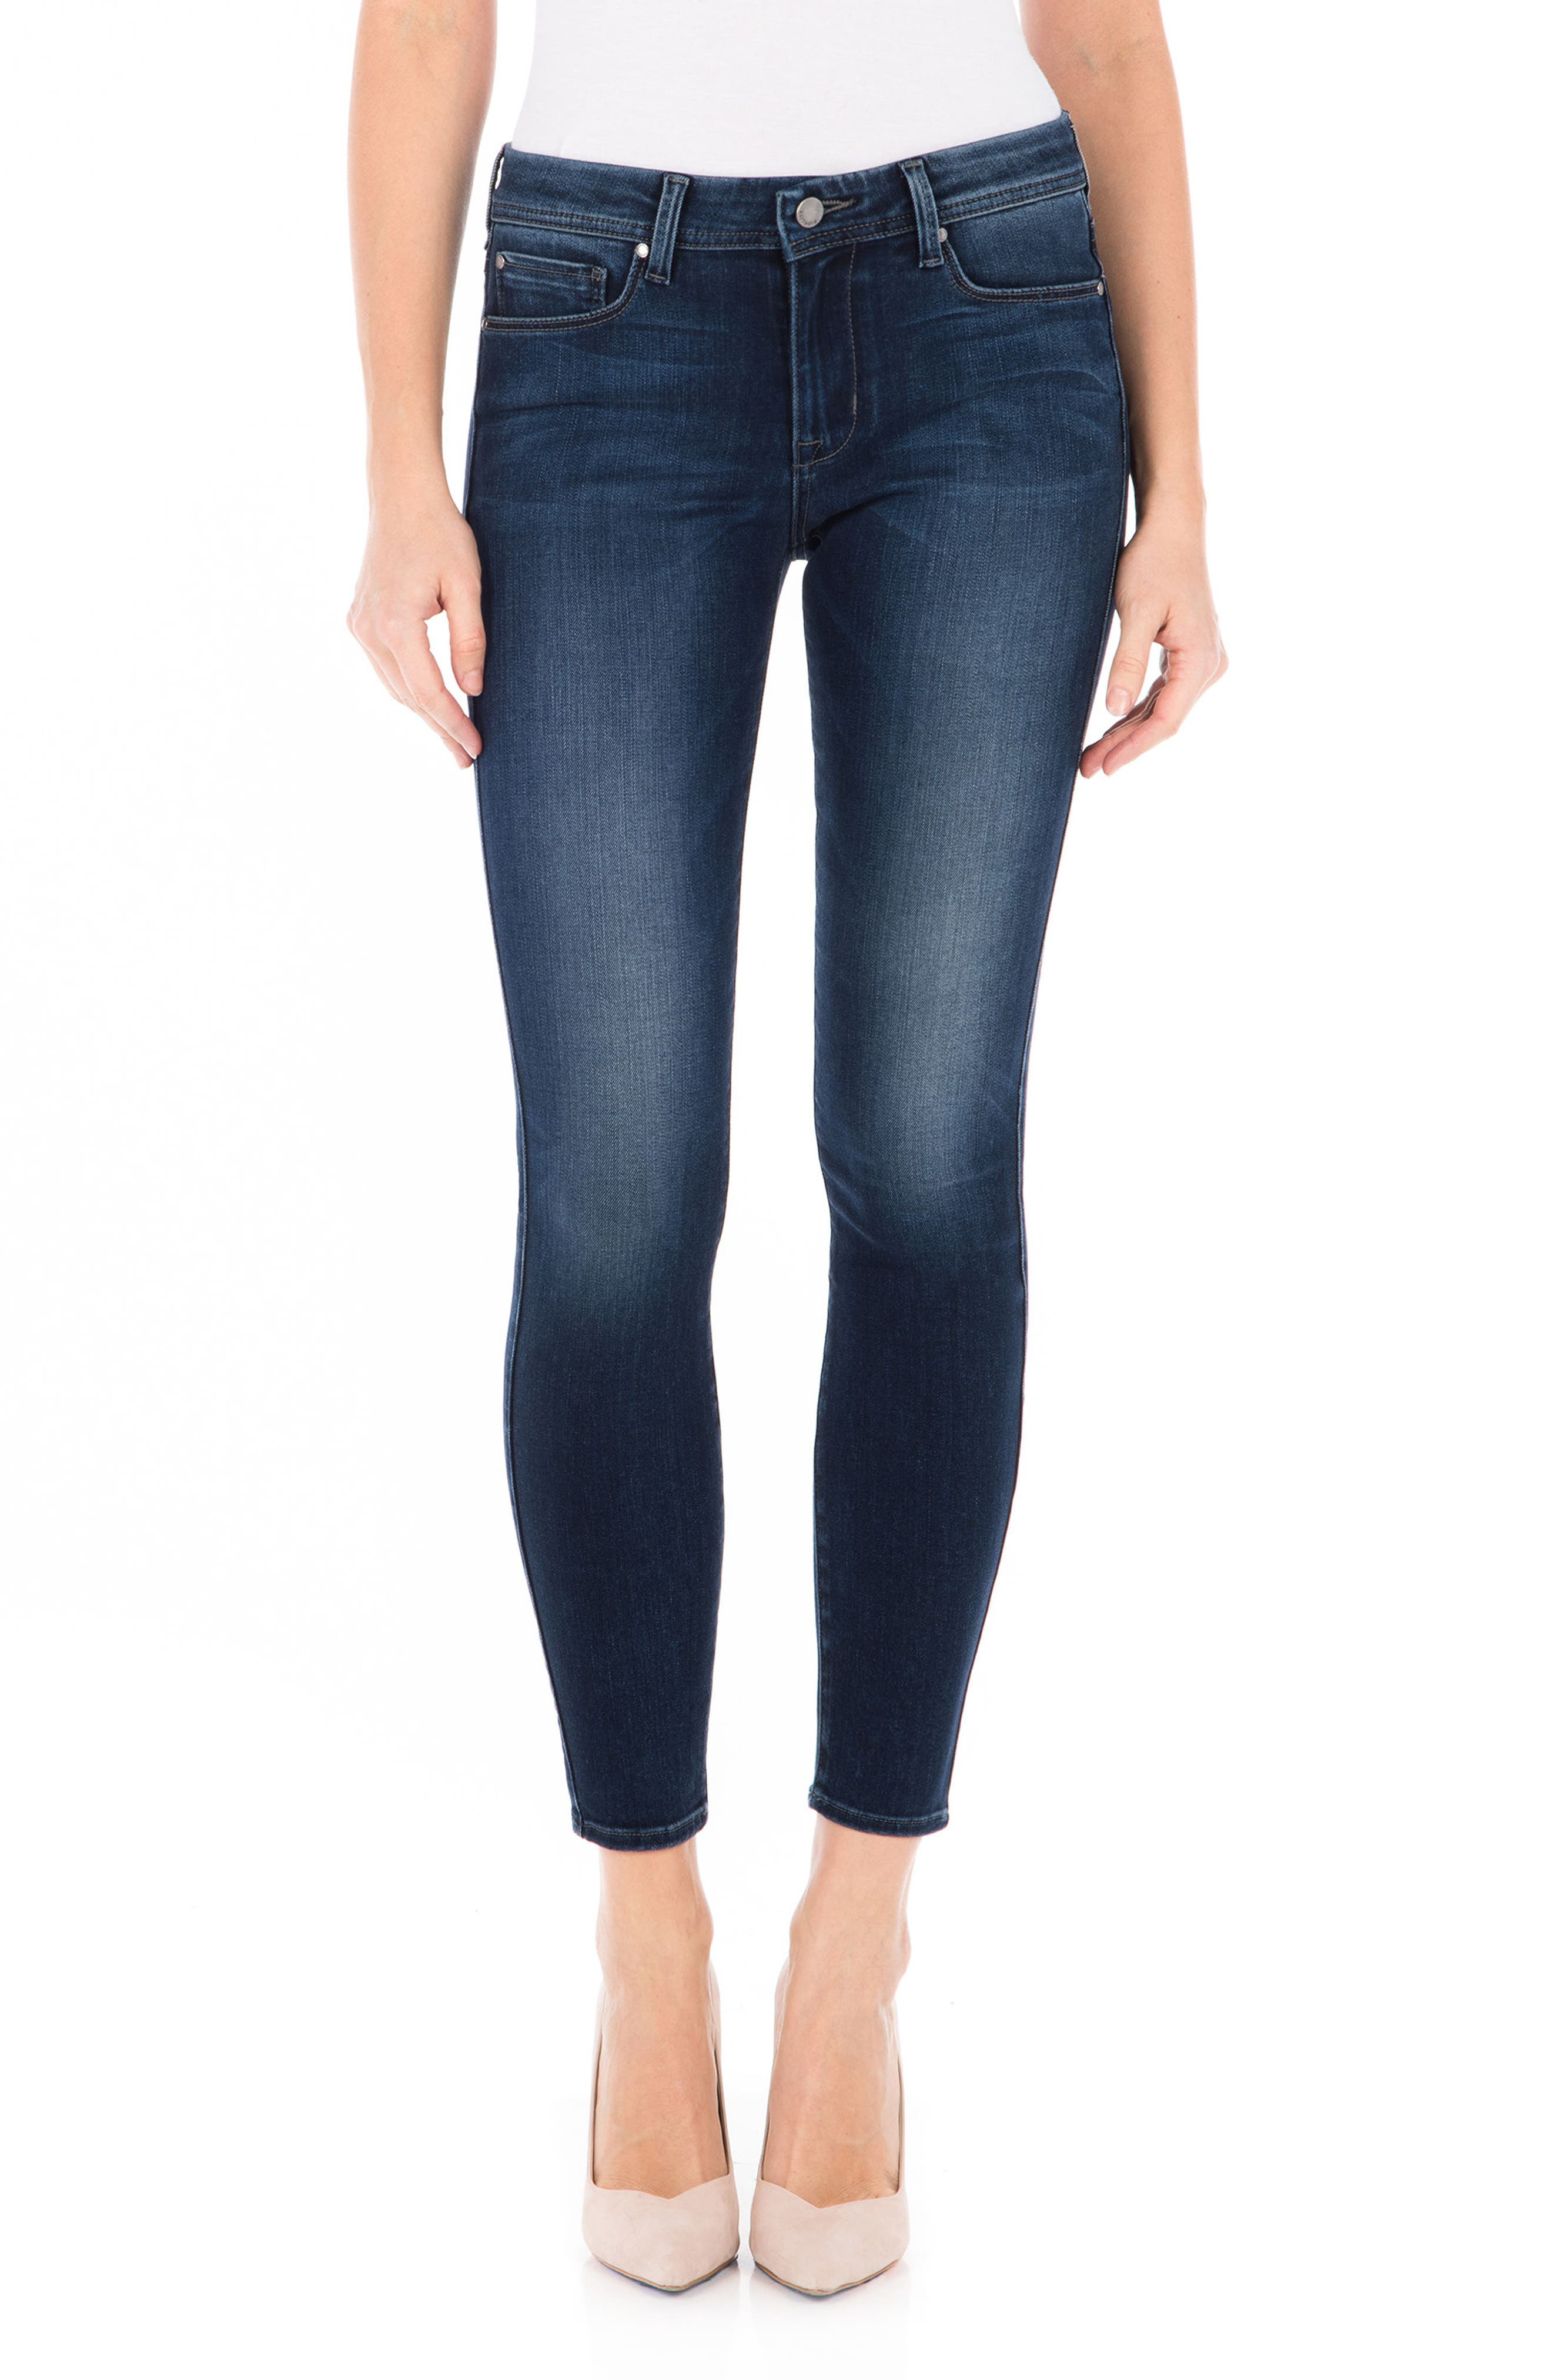 Sola Skinny Jeans,                             Main thumbnail 1, color,                             Blue Suede